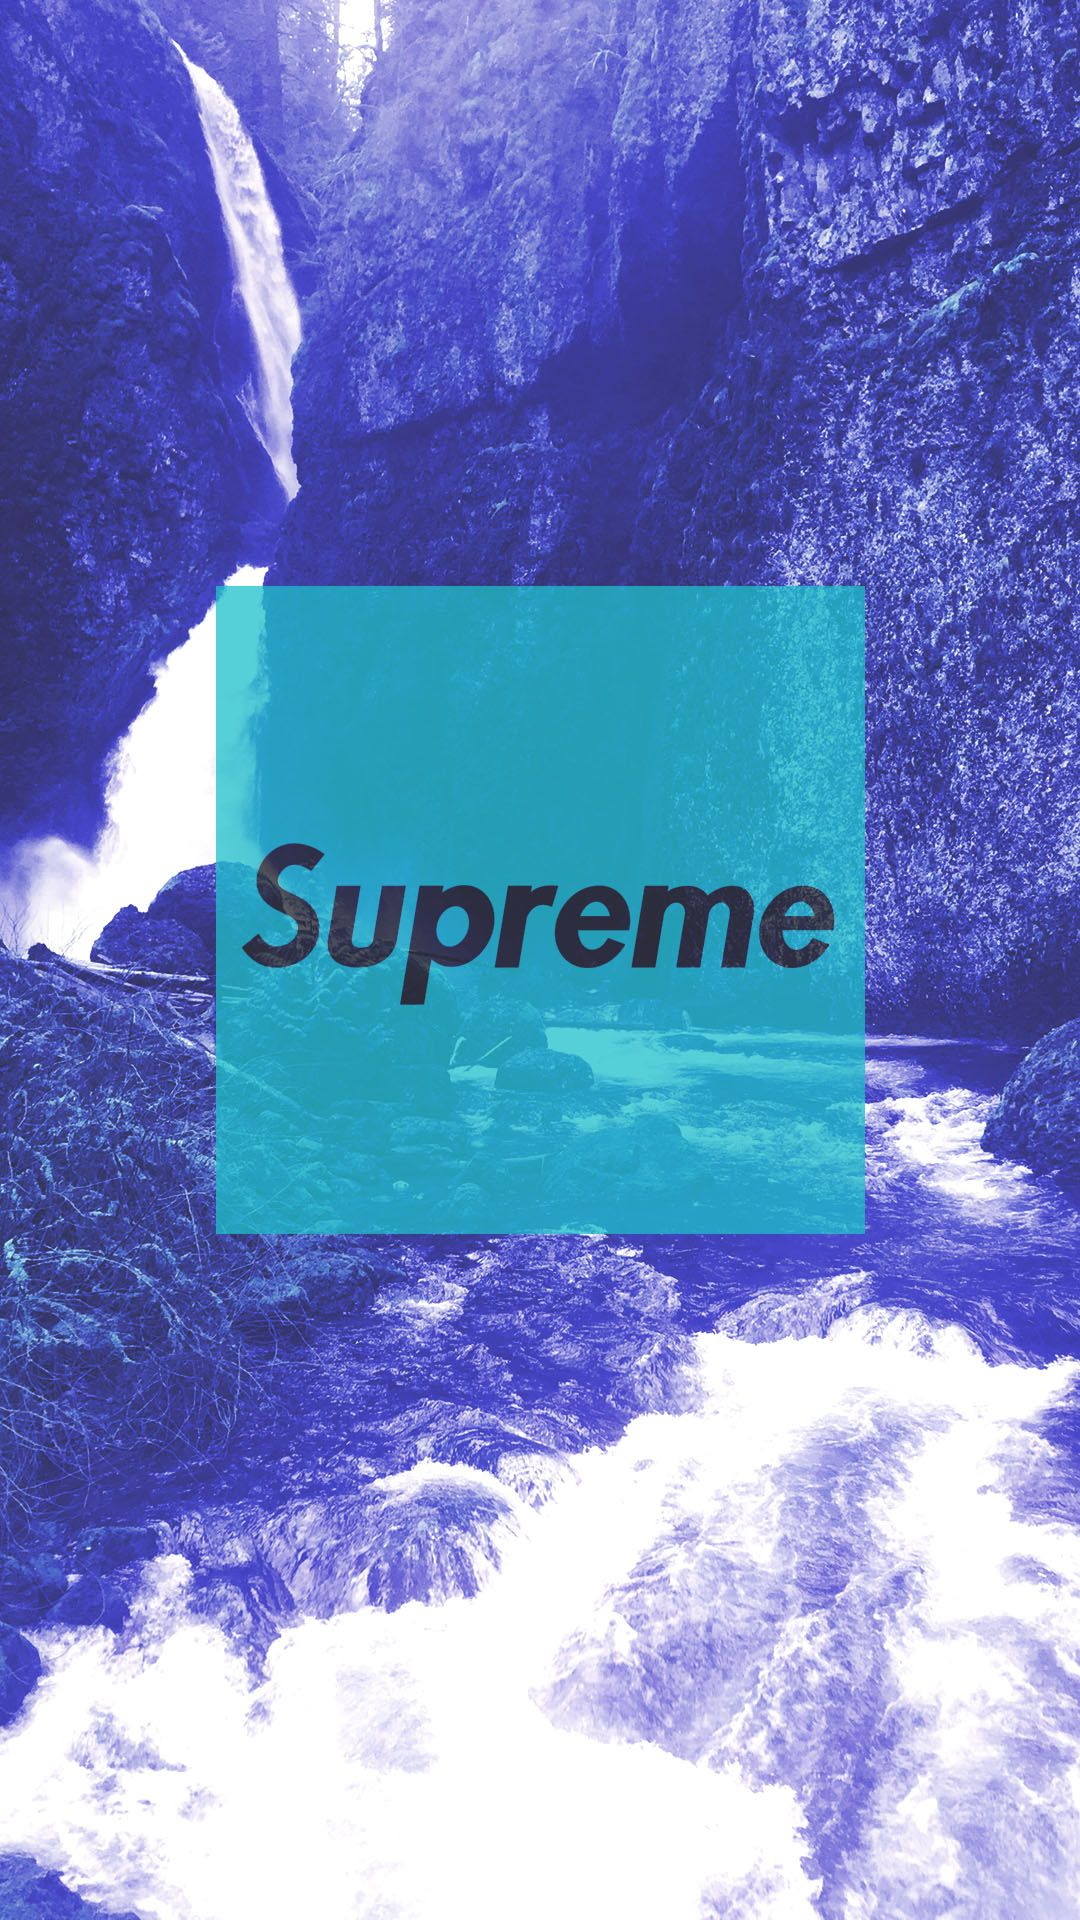 1080x1920 Supreme Unaltered Version In Comments Need Iphone 6s Plus Wallpaper Background Hypebeast Wallpaper Nike Wallpaper Supreme Iphone Wallpaper